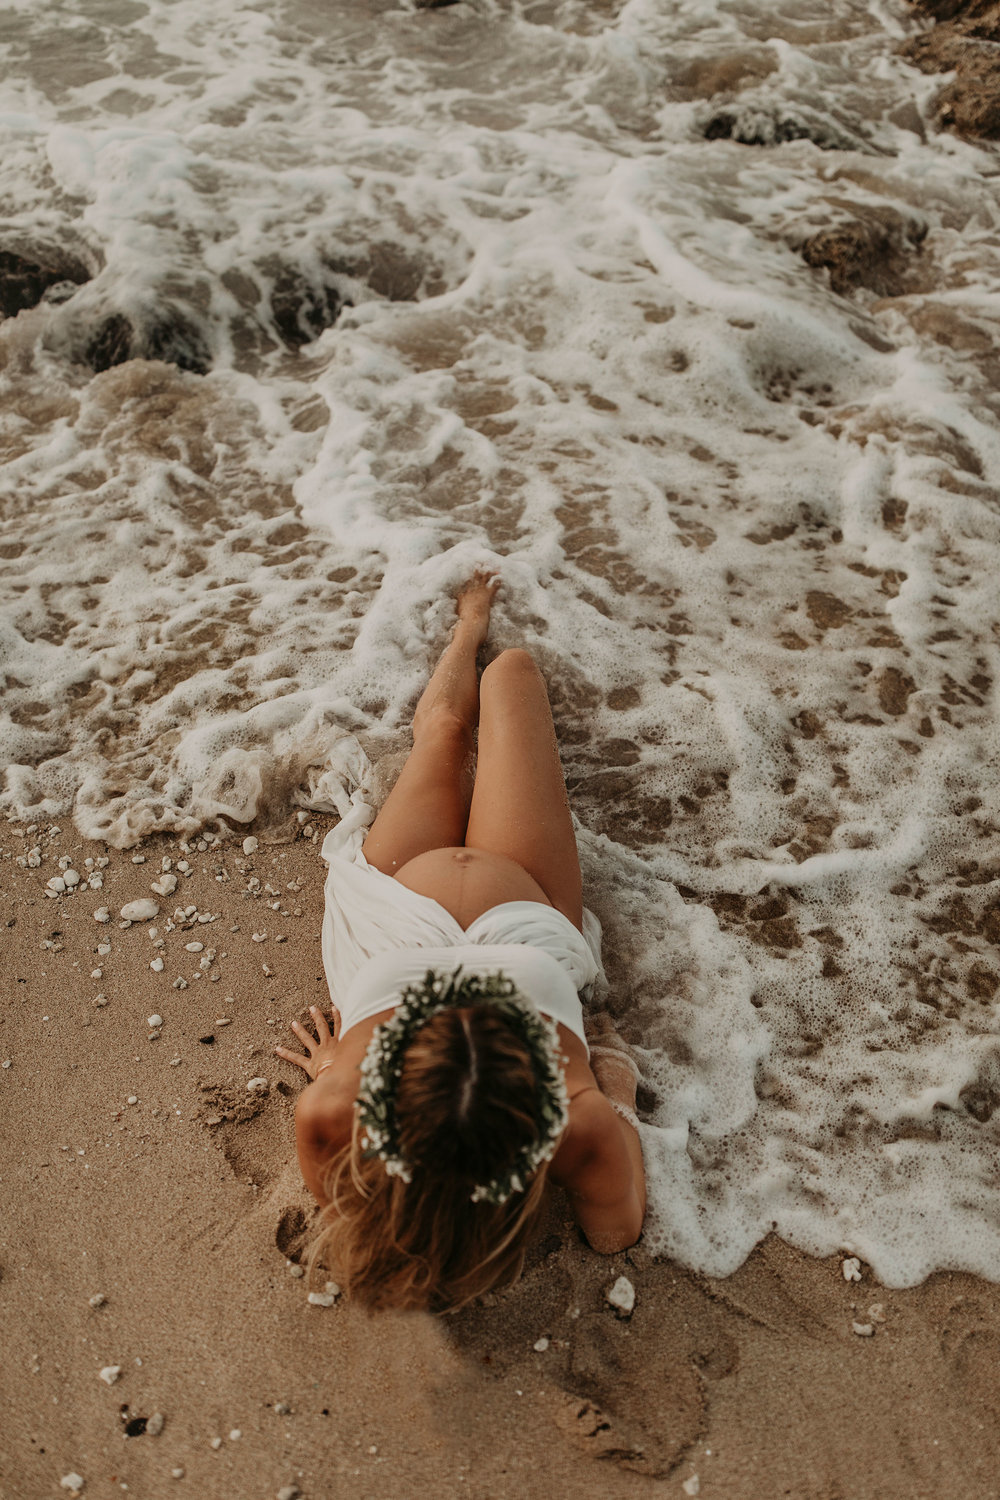 Hawaii-Maternity-Photographer-13.jpg